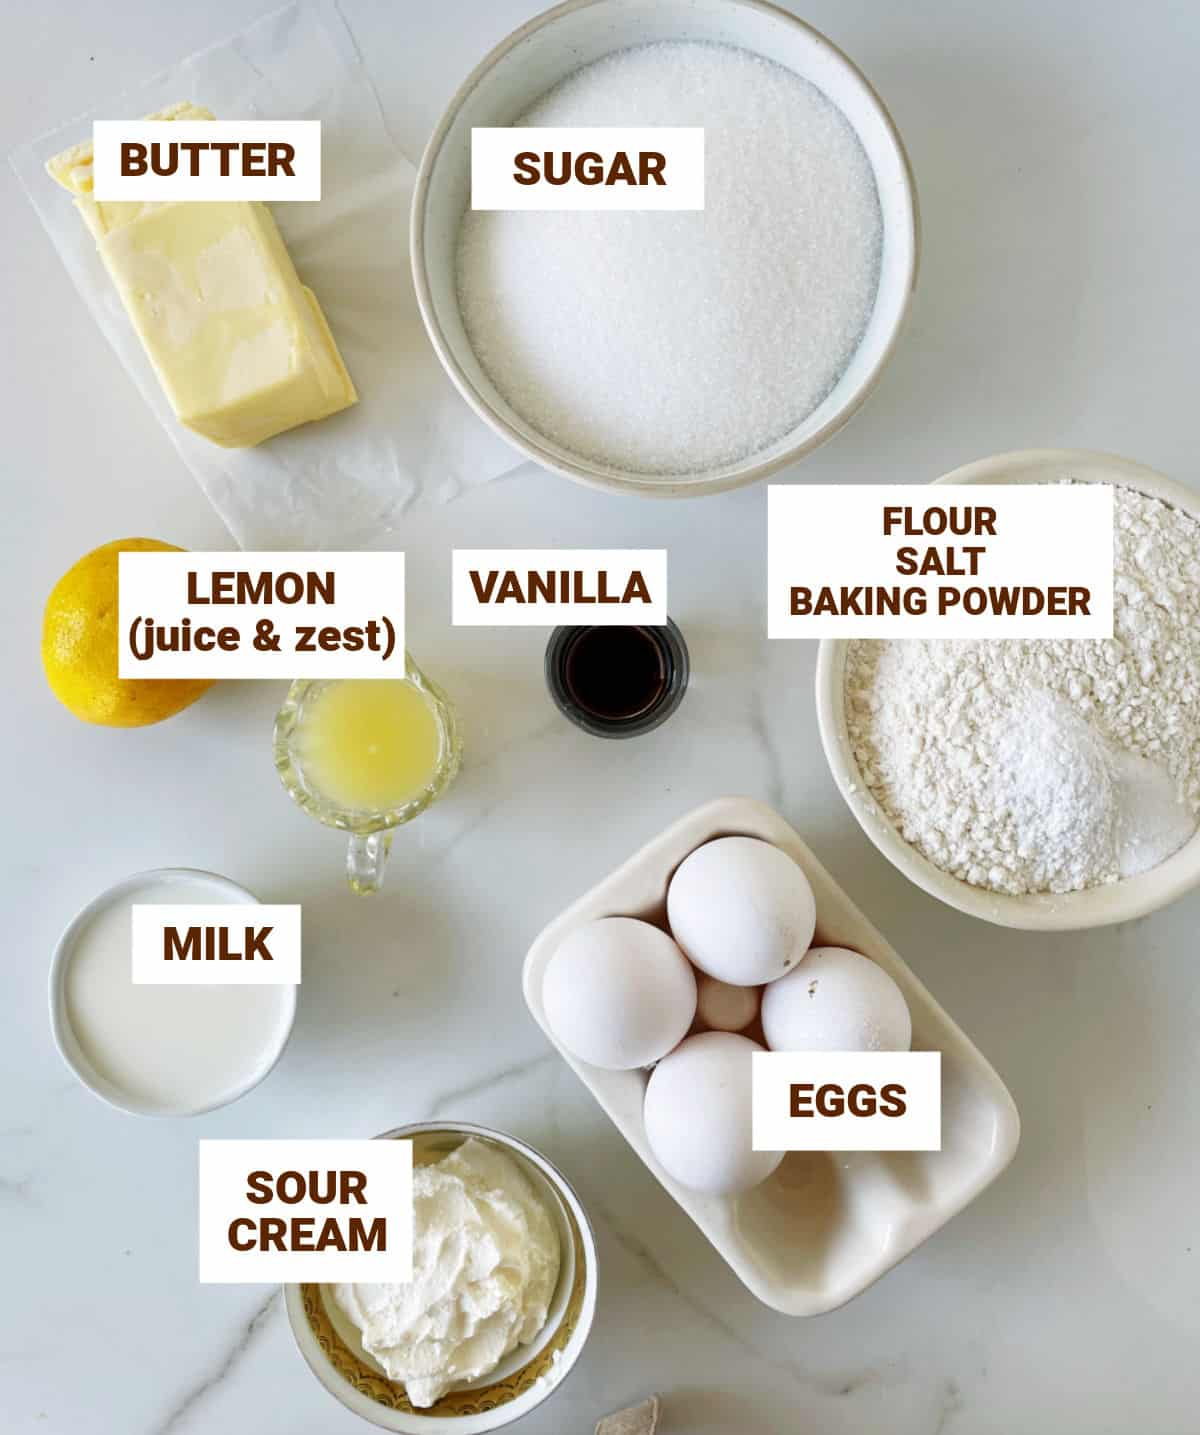 White surface with bowls containing ingredients for lemon cake including butter, eggs, sour cream, vanilla, milk